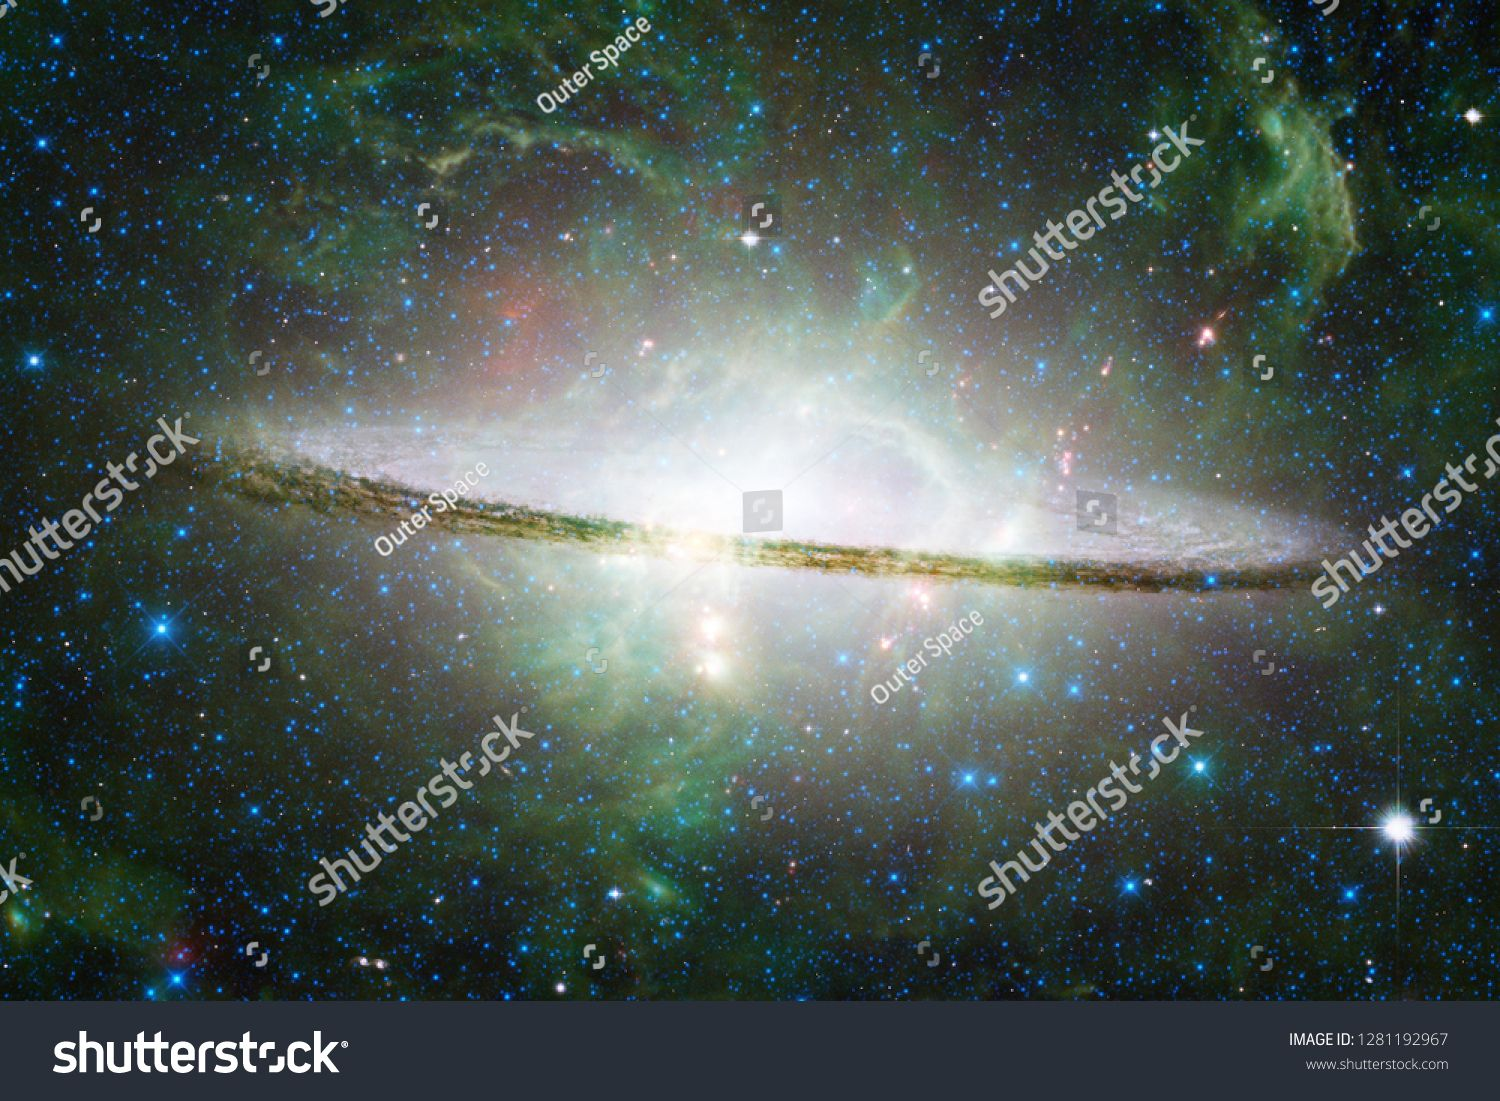 Cosmic Landscape Awesome Science Fiction Wallpaper Elements Of This Image Furnished By Nasa Ad Sponsored Fun Science Mandala Design Art Science Fiction